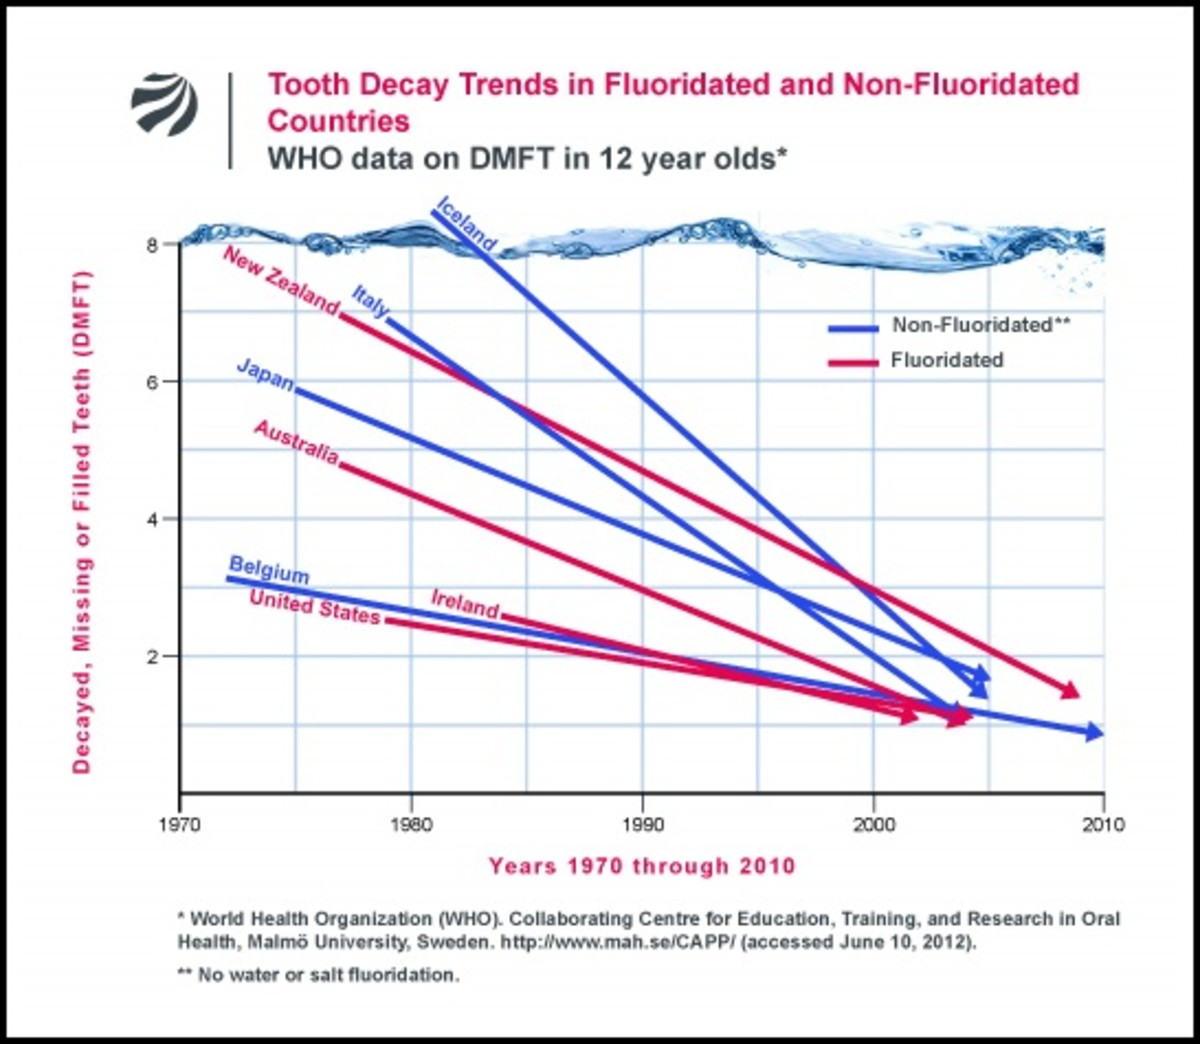 WHO data showing tooth decay trends in children, with and without water fluoridation.